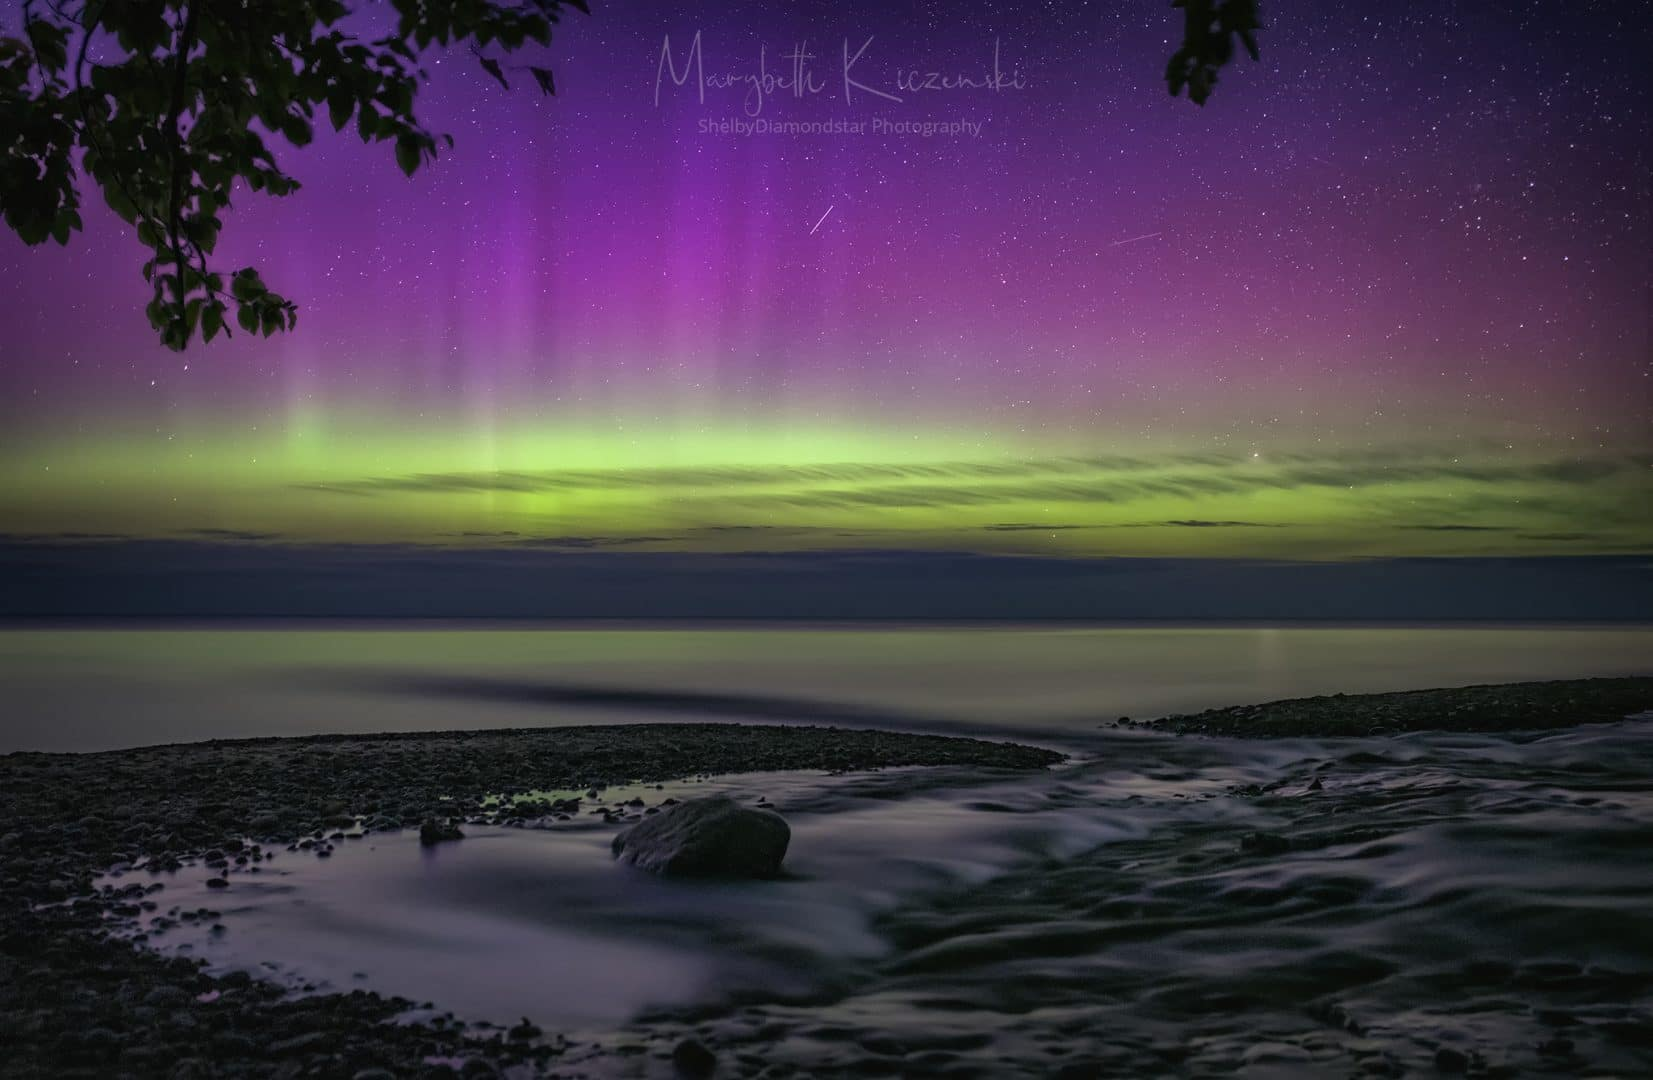 You don't have to go to the Arctic to witness the Northern Lights!  The Upper Peninsula offers many locations with easy access to the northern-facing Lake Superior shoreline. Photo by MaryBeth Kiczenski.